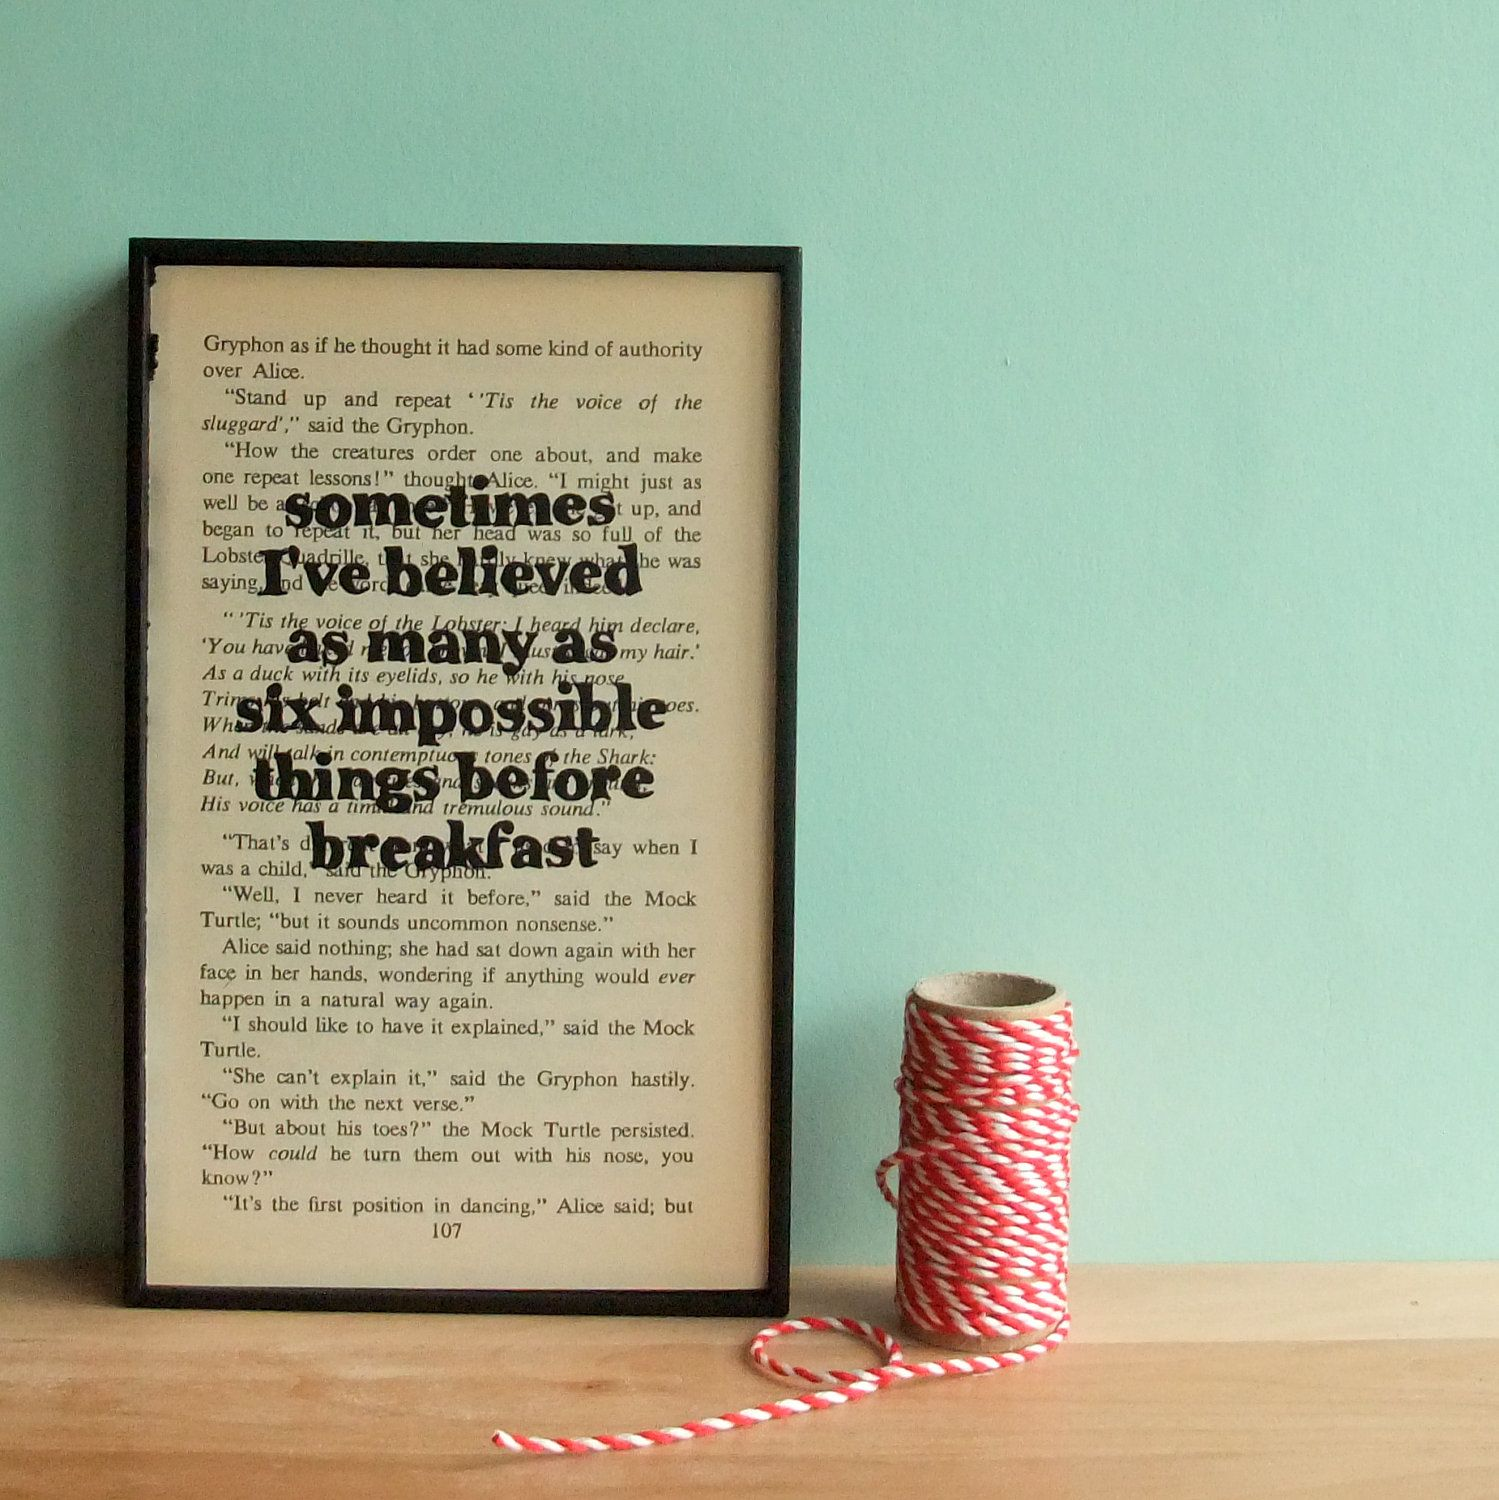 Alice In Wonderland Six Impossible Things Framed Book Art Print